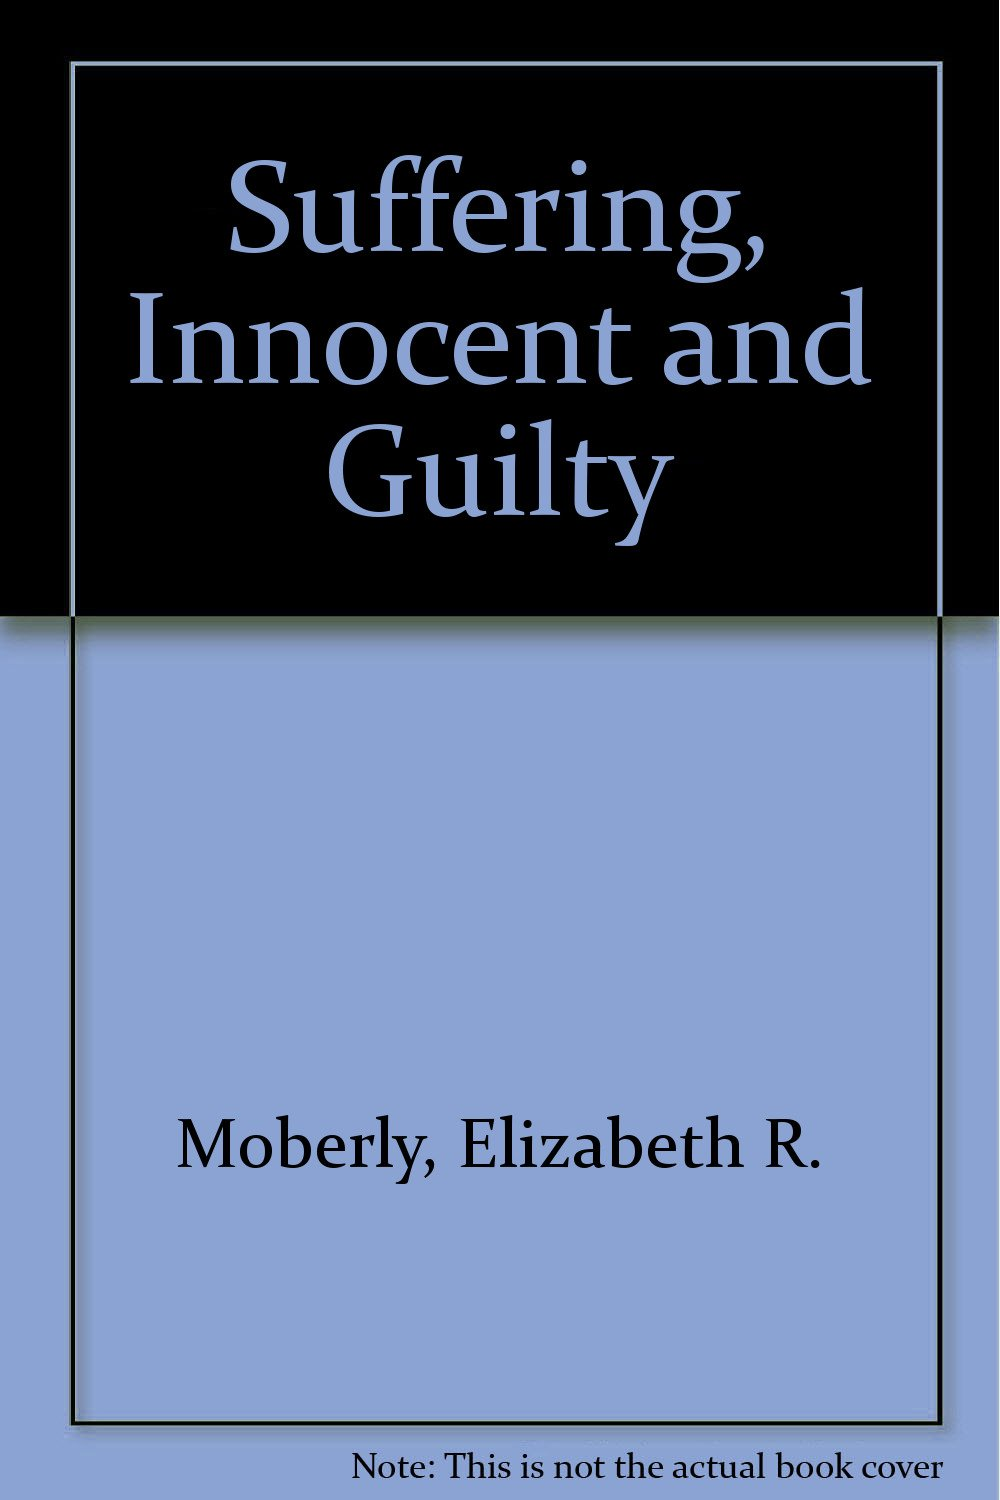 Suffering, Innocent and Guilty (Inglese) Copertina flessibile – 28 set 1978 Elizabeth R. Moberly SPCK Publishing 0281036233 VI-0281036233